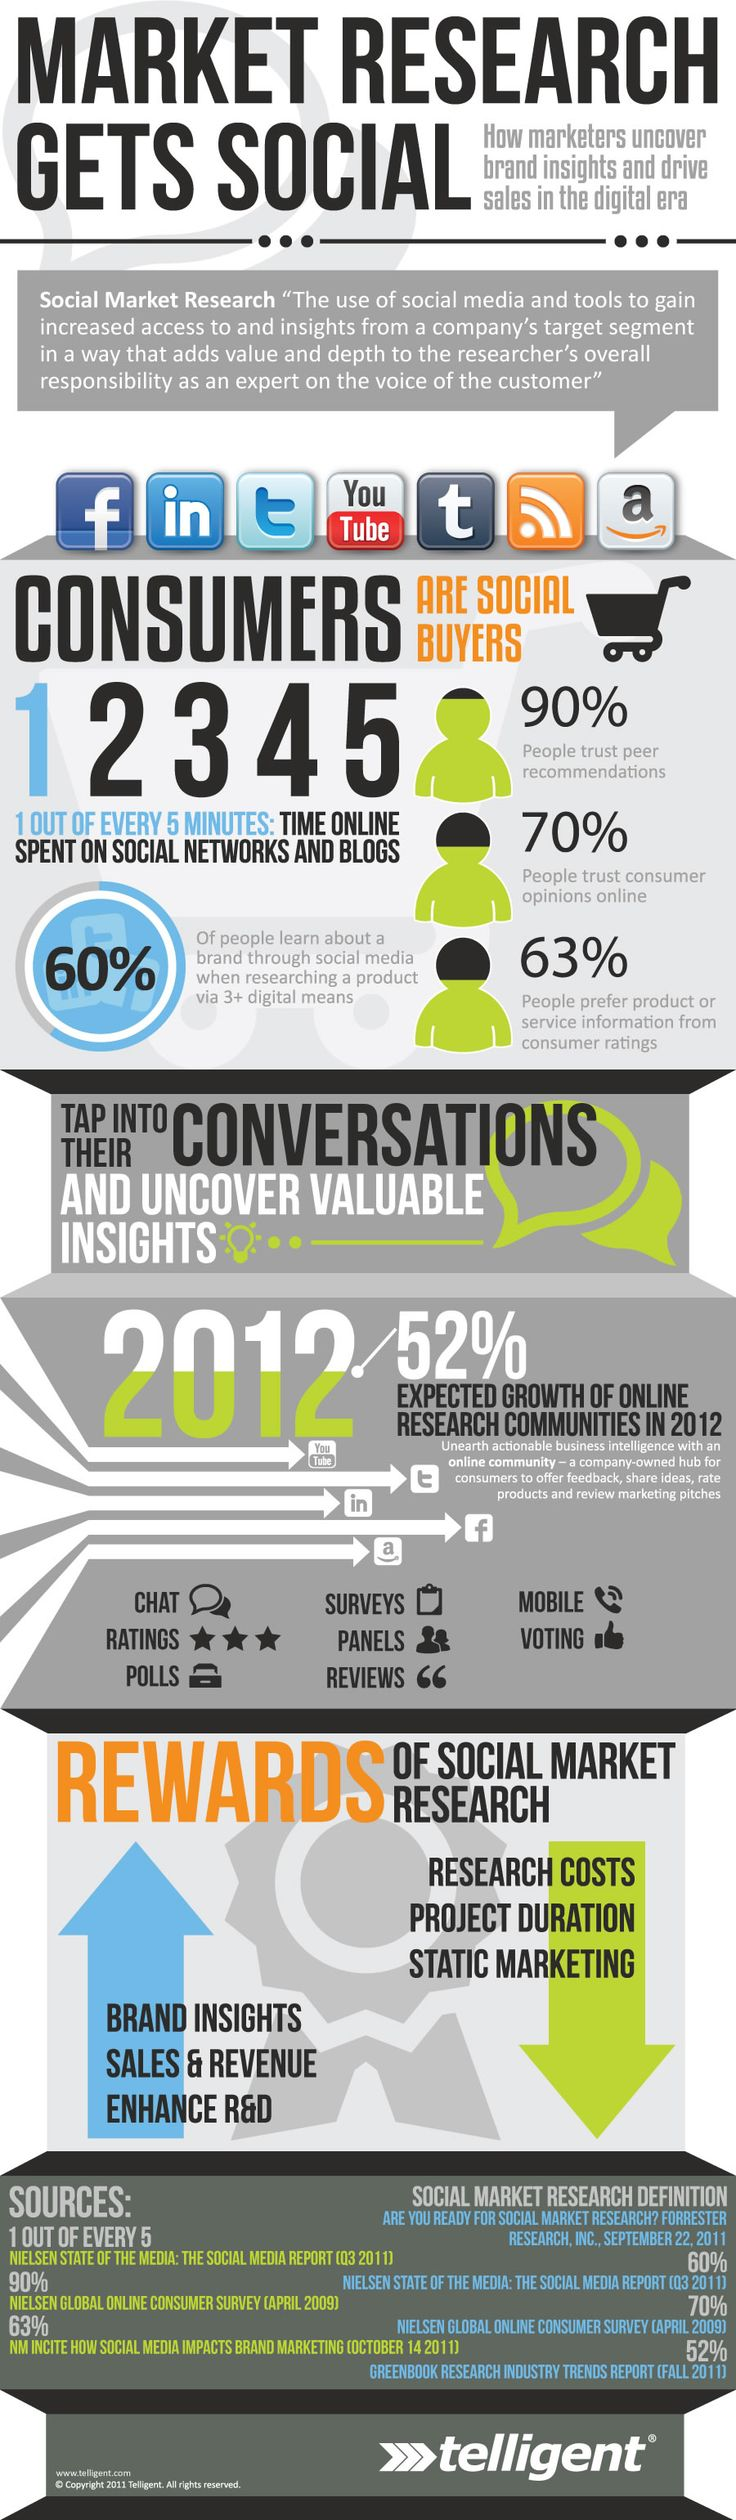 Market Research Gets Social: How Marketers Uncover Brand Insights And Drive Sales In The Digital Era